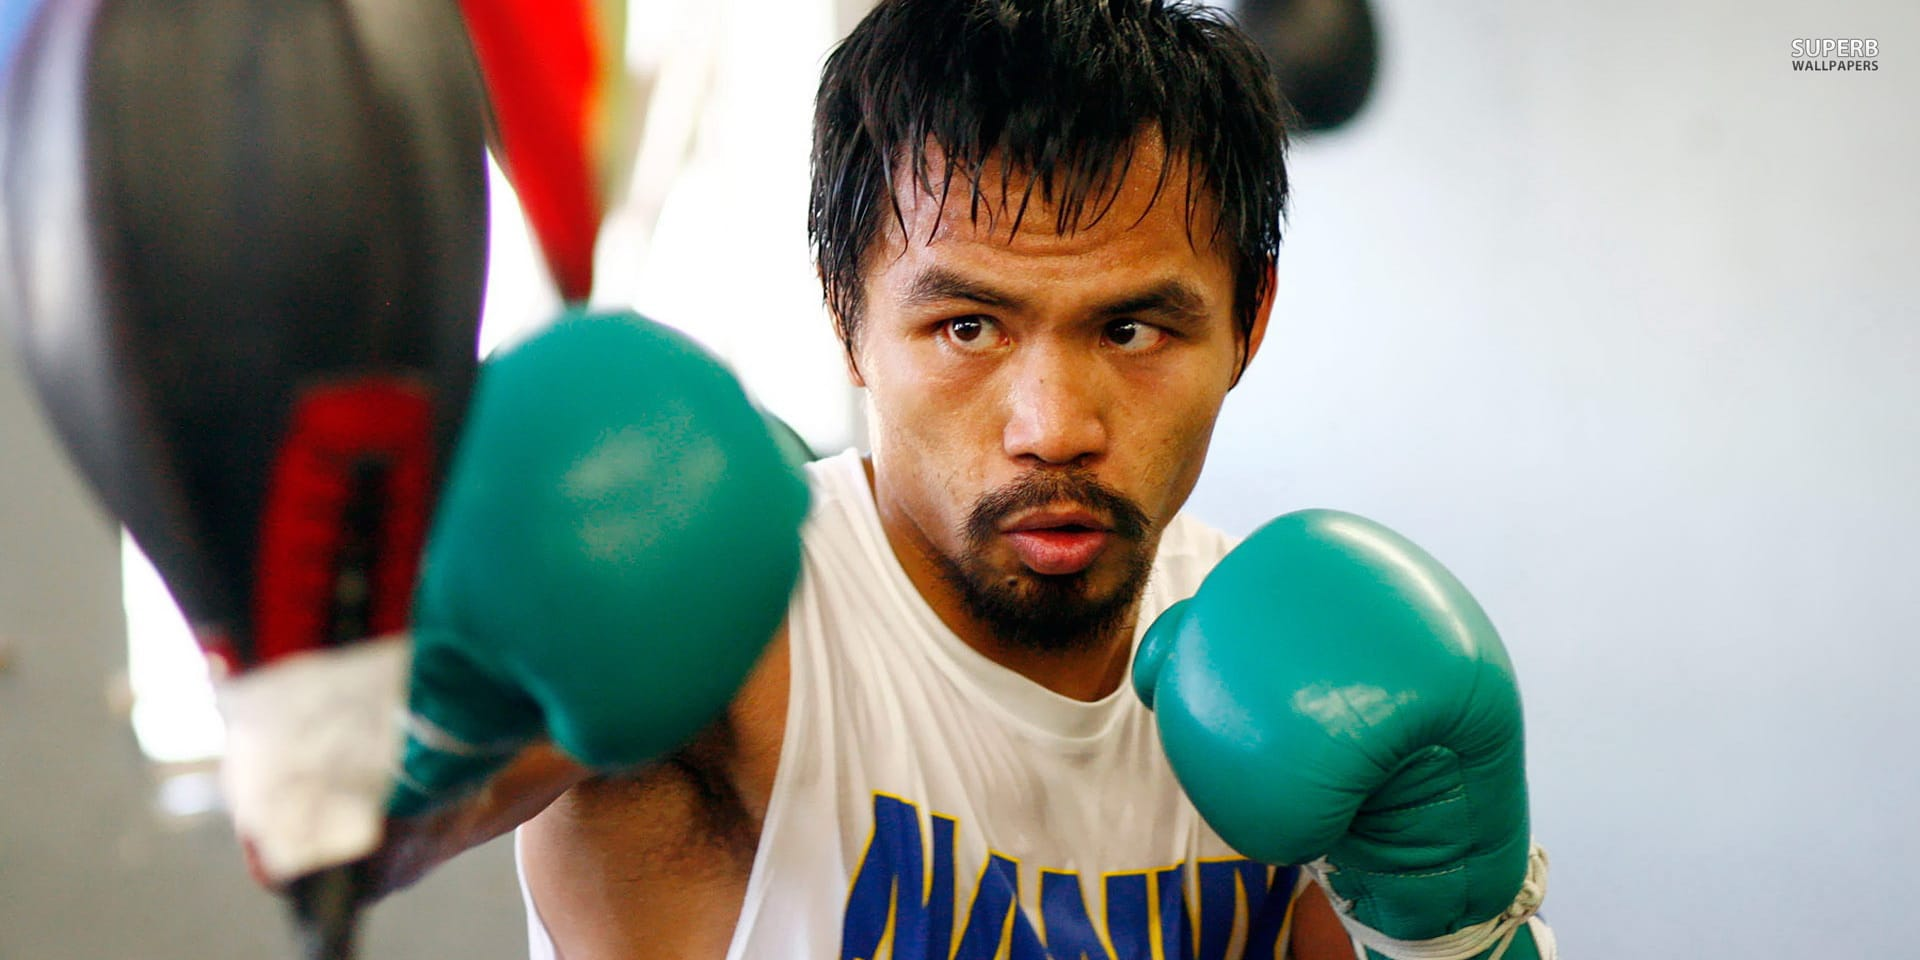 biography of manny pacquiao Manny pacquiao (マニー・パッキャオ, manī pakkyao) is a character from manga series of baki-dou trivia manny pacquiao is the real-life filipino professional boxer.